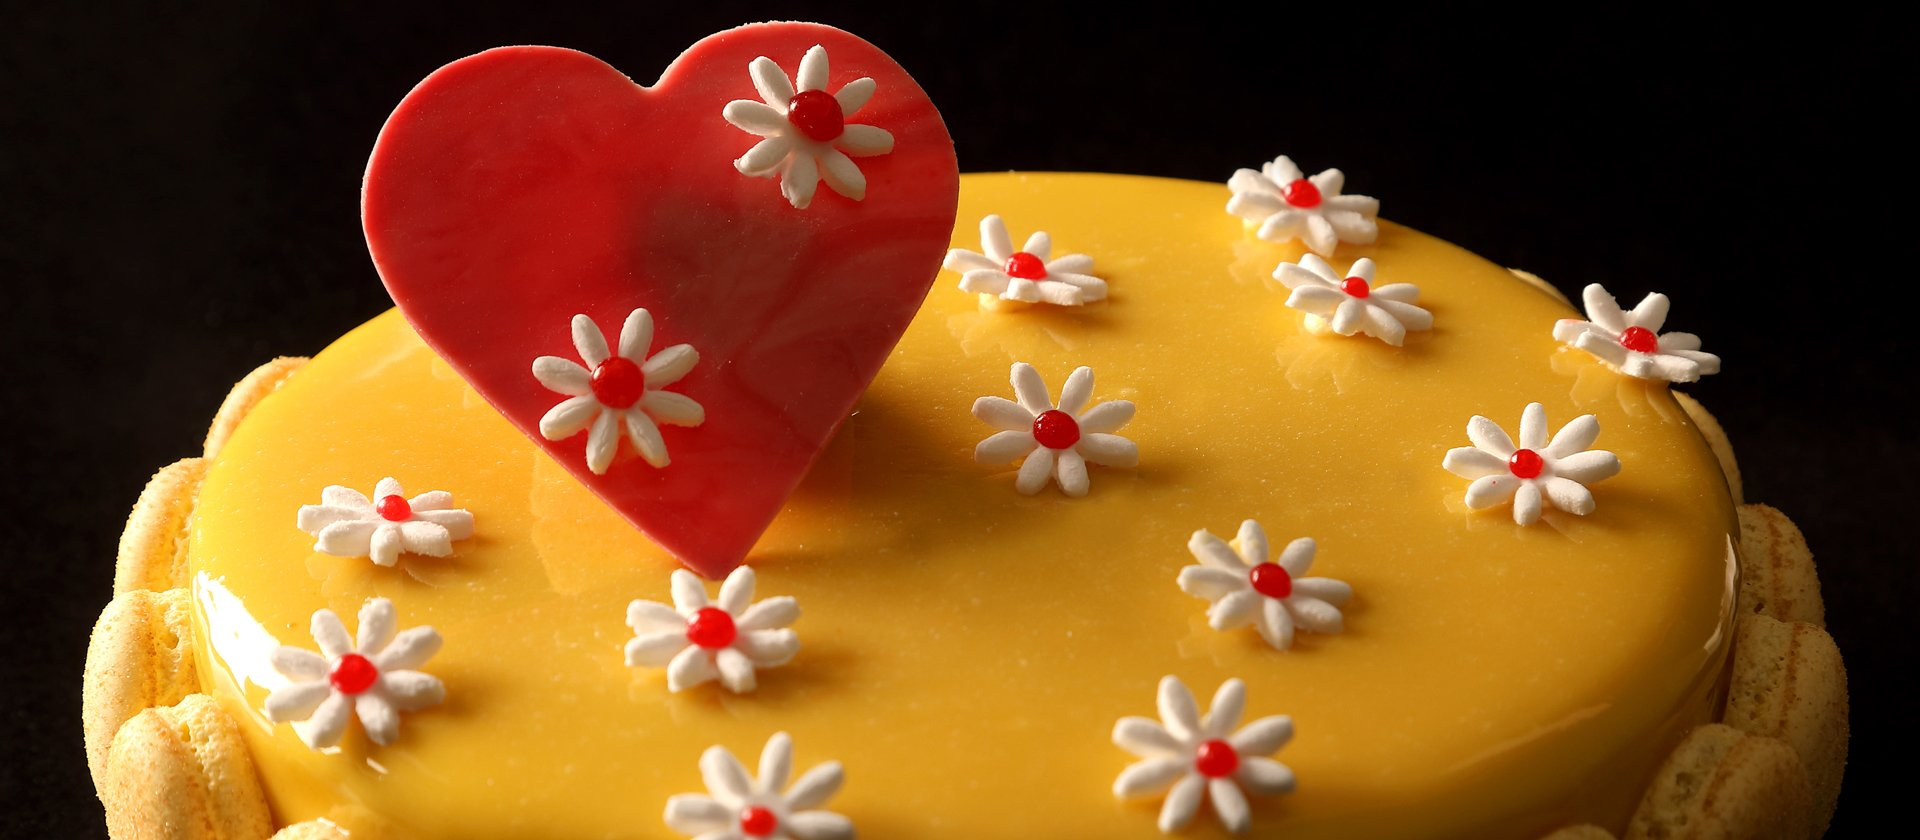 Valentine's day recipe: Lovers' entremets